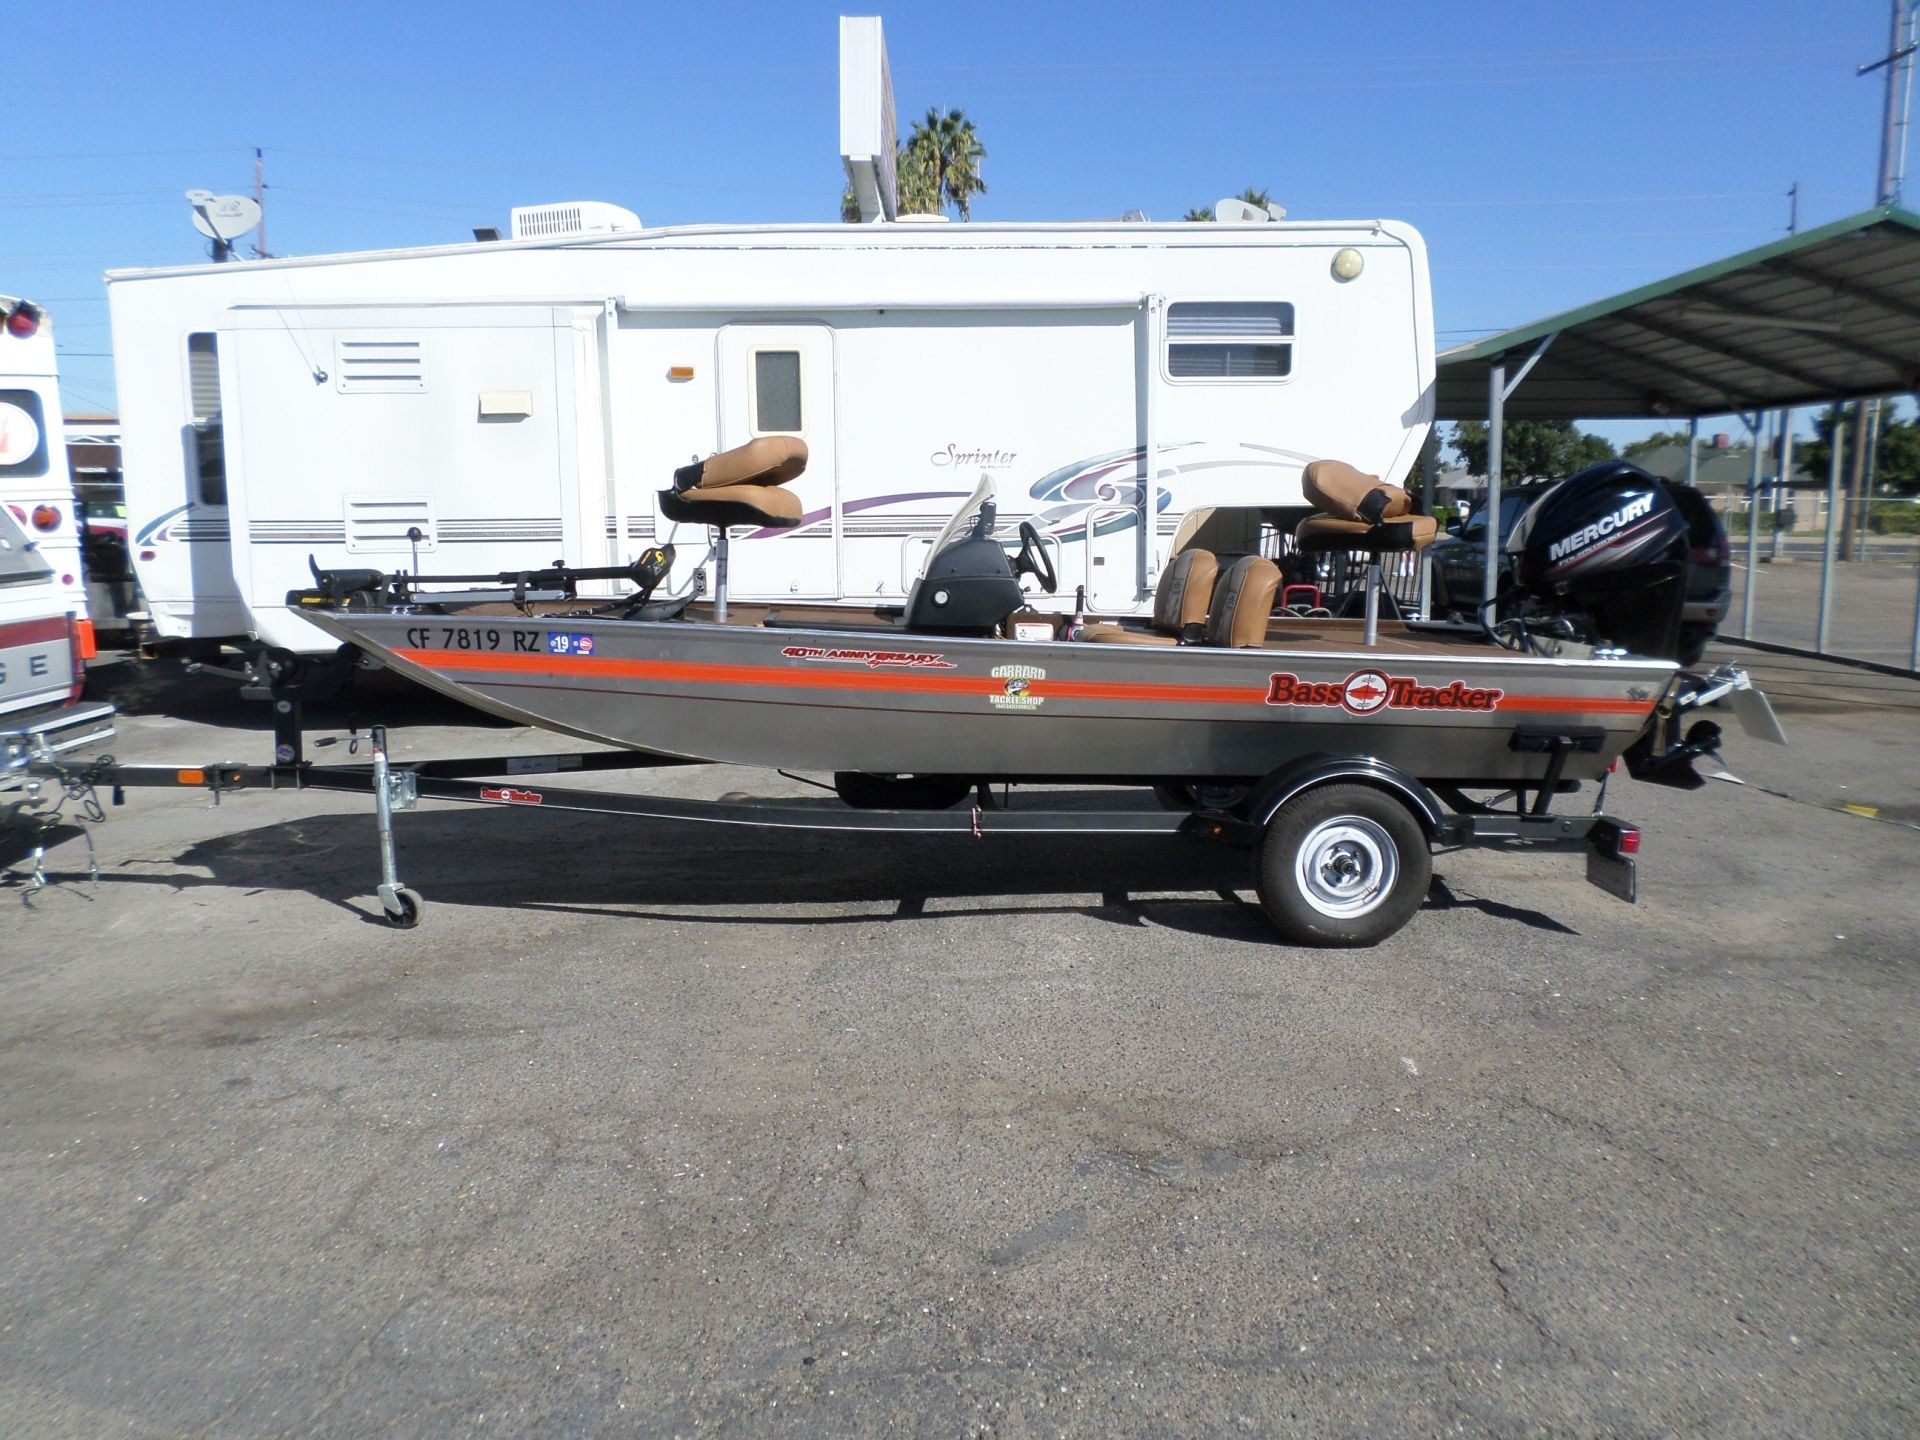 Boat for sale: 2018 Tracker Bass Tracker 40th Anniversary Heritage